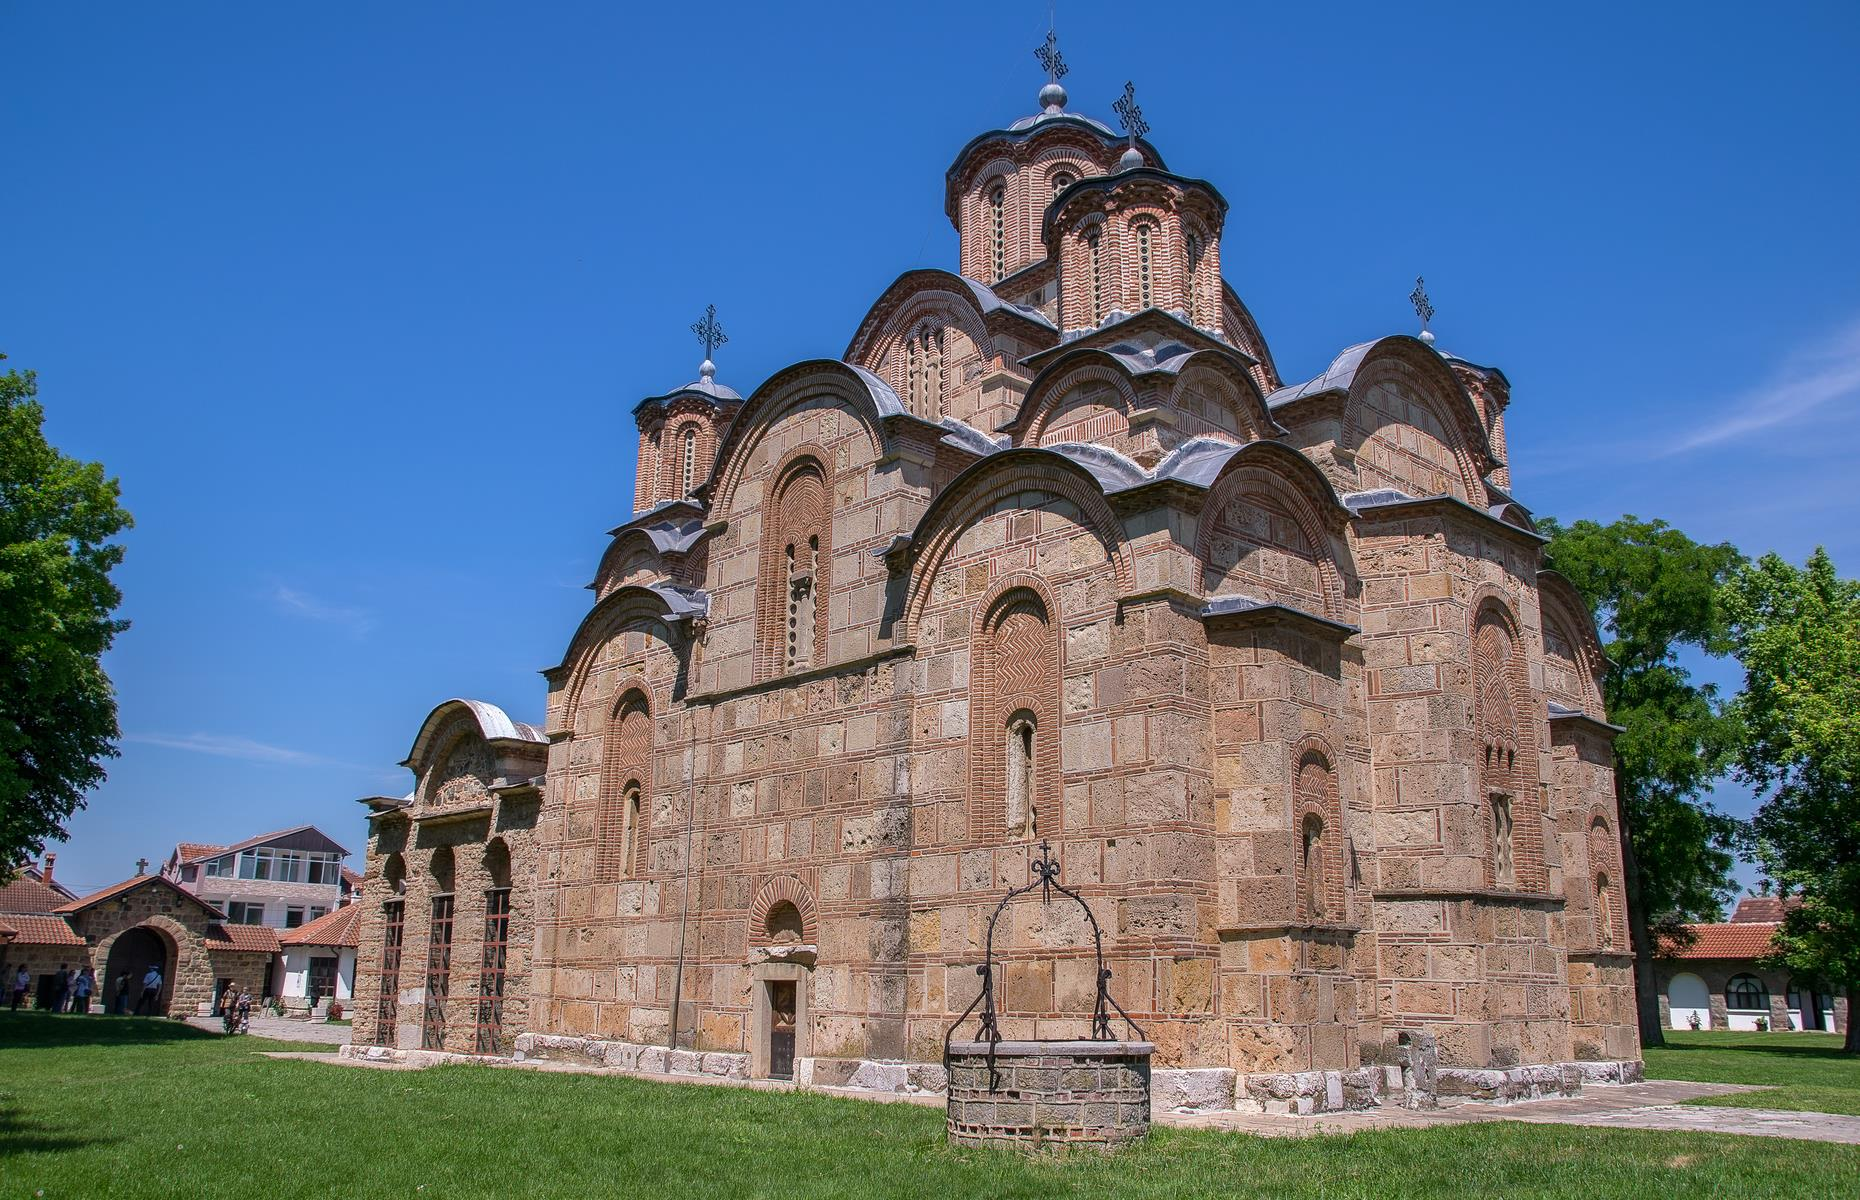 "Slide 38 of 53: Four Serbian Orthodox monasteries that ""reflect the high points of the Byzantine-Romanesque ecclesiastical culture"" make up the UNESCO World Heritage Site in Kosovo. The interiors of Dečani monastery, Patriarchal Monastery of Peć, Our Lady of Ljeviš and Gračanica monastery are adorned with vibrant frescos, a style which developed in the Balkans between the 13th and 17th centuries. It is on the World Heritage in Danger list due to difficulties in its management and conservation stemming from the region's political instability."